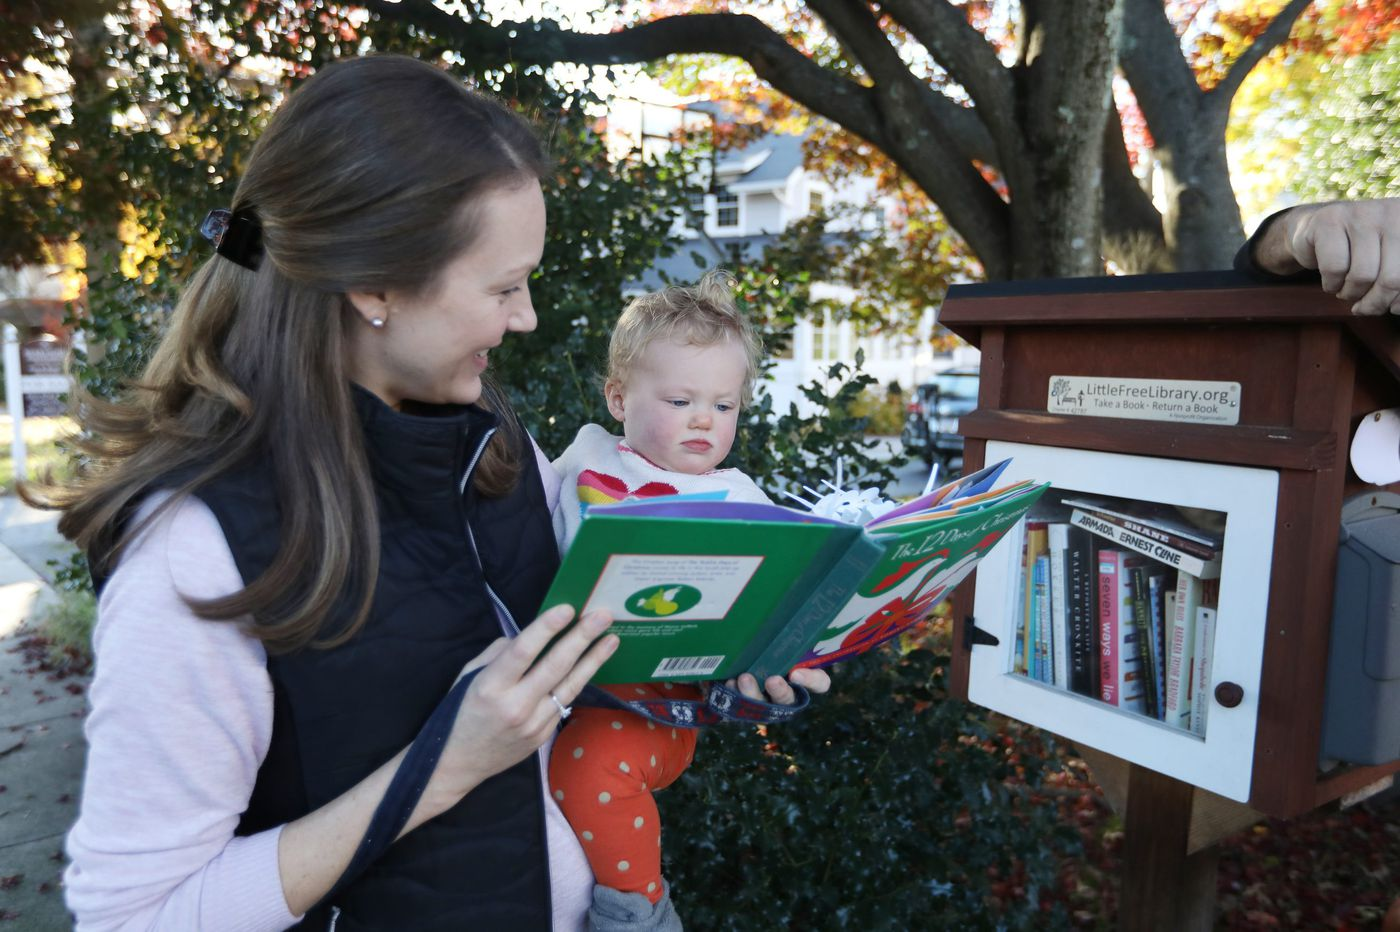 Take a book, leave a book. Little Free Libraries are popping up around Philly.